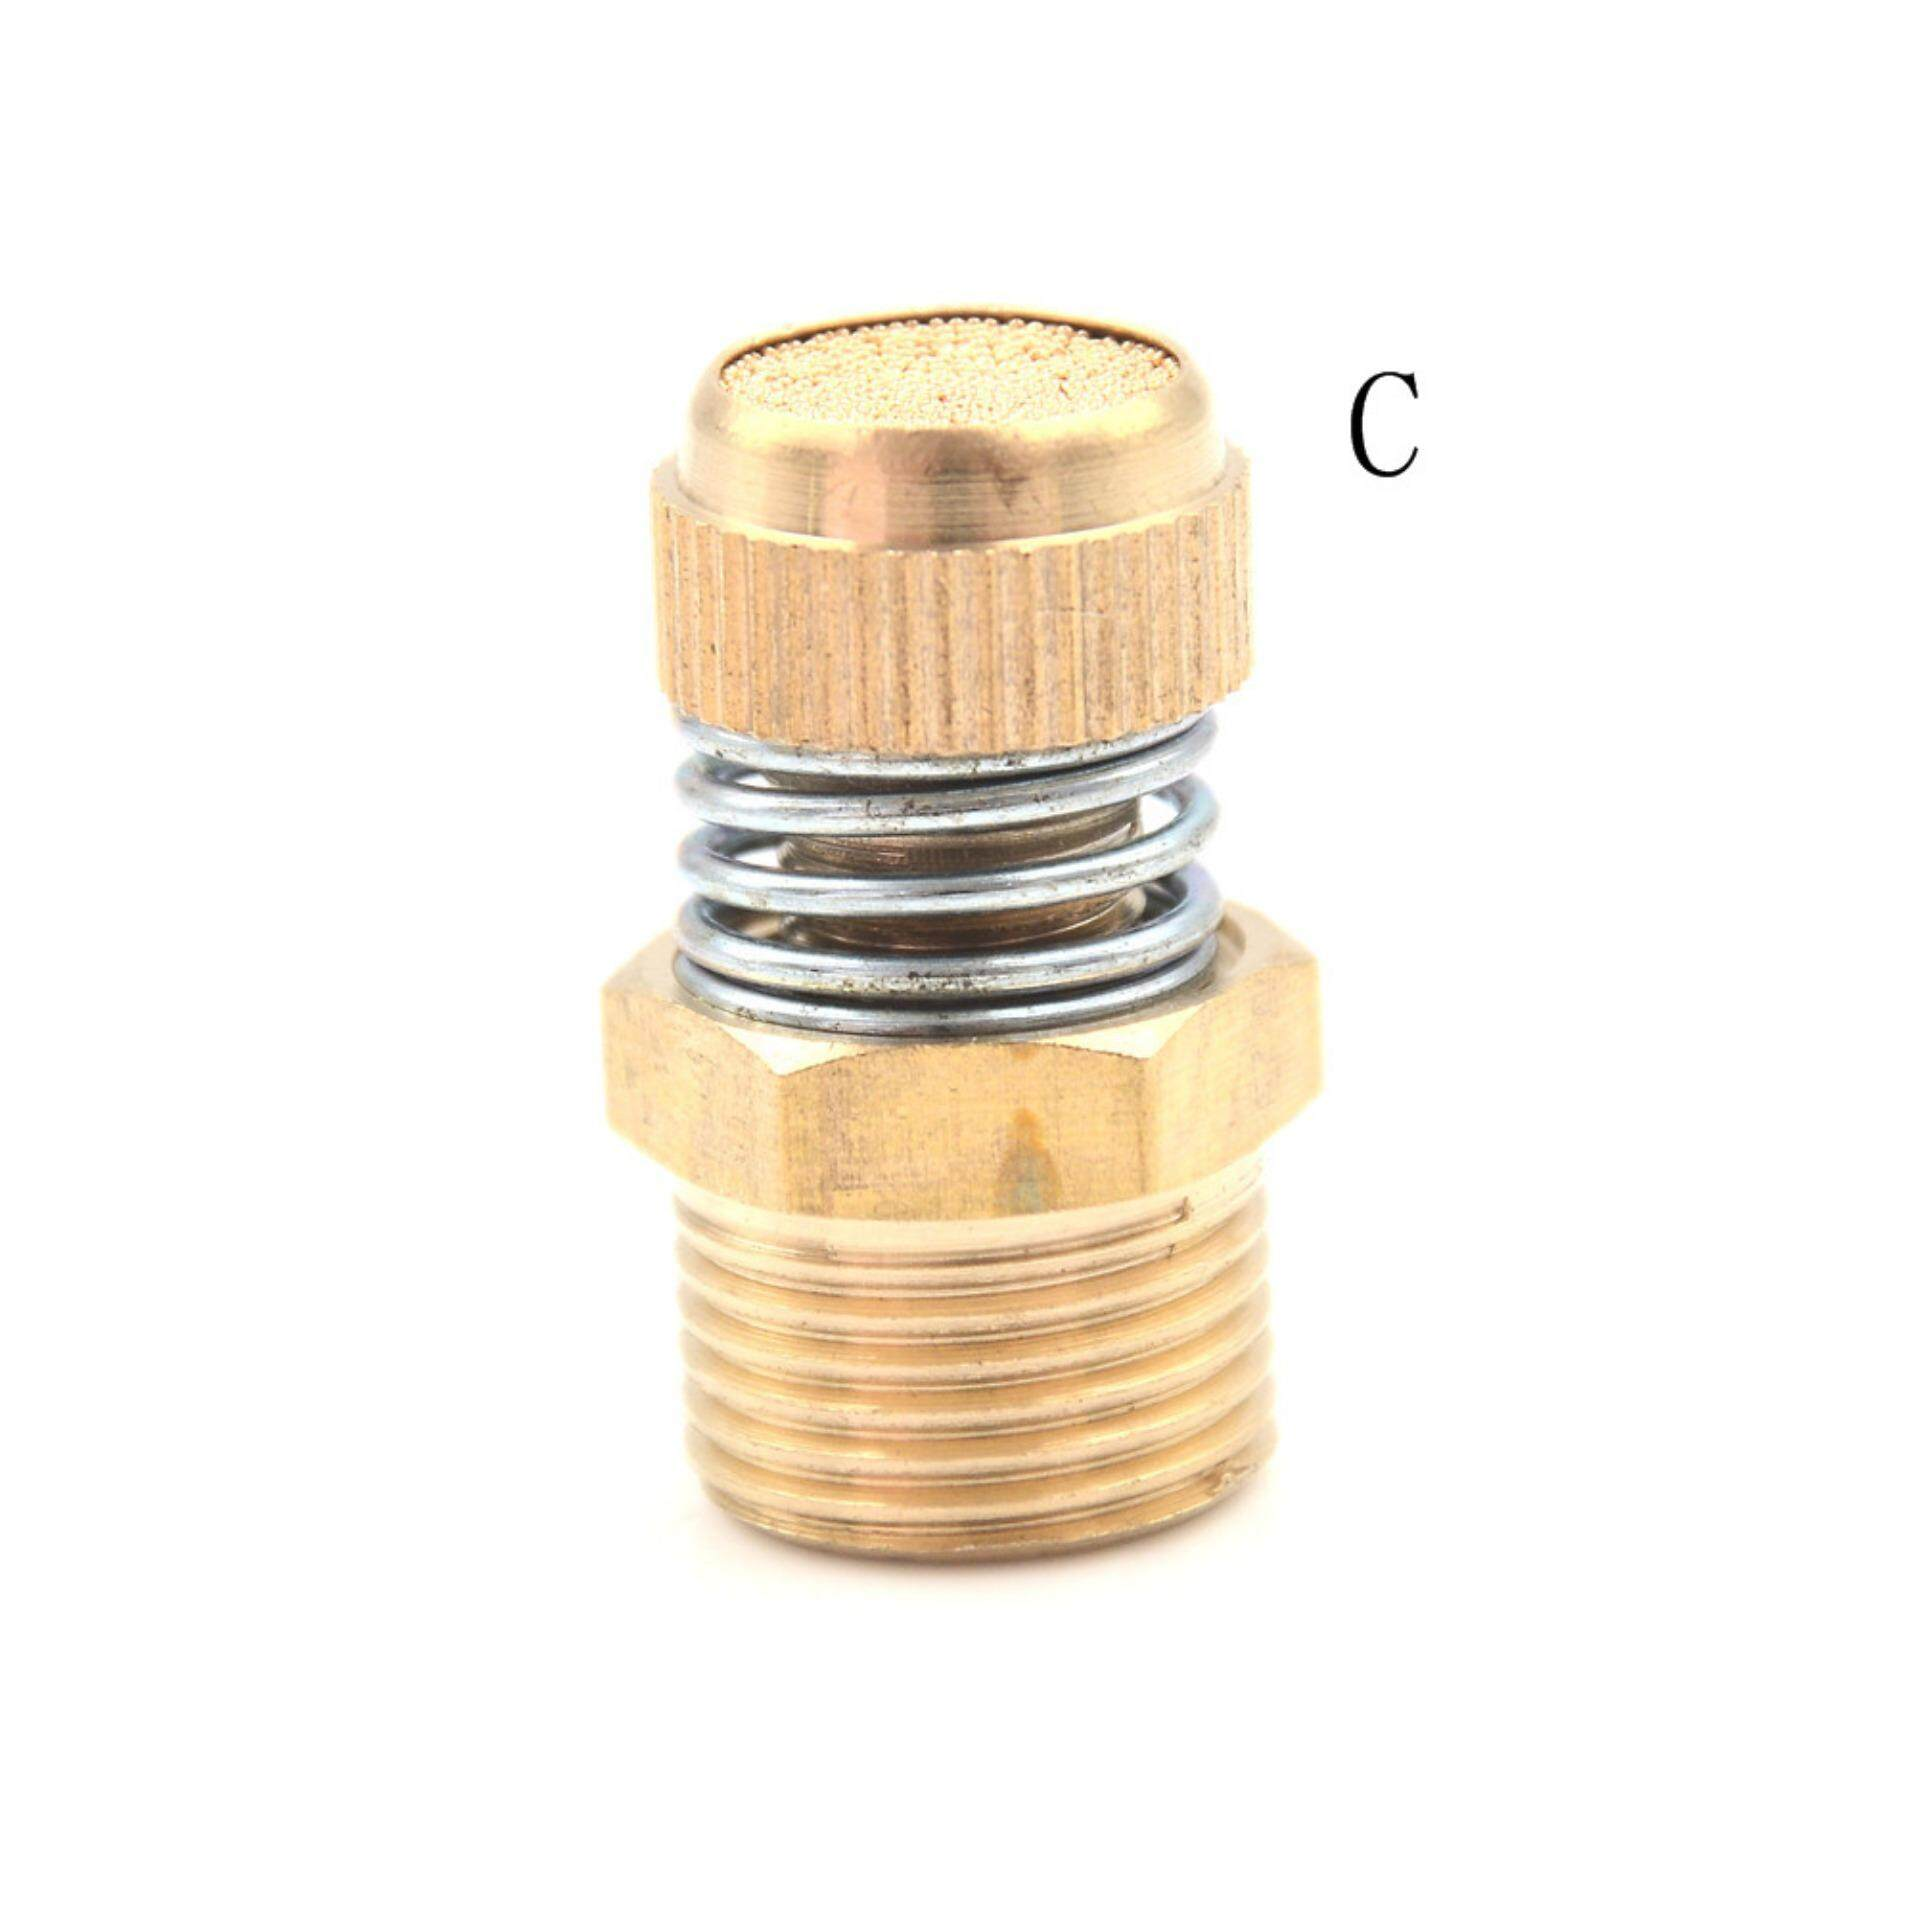 Bảng giá Pneumatic Brass Spring Flow Control Silencer Air Exhaust Muffler Fitting Type:C - intl